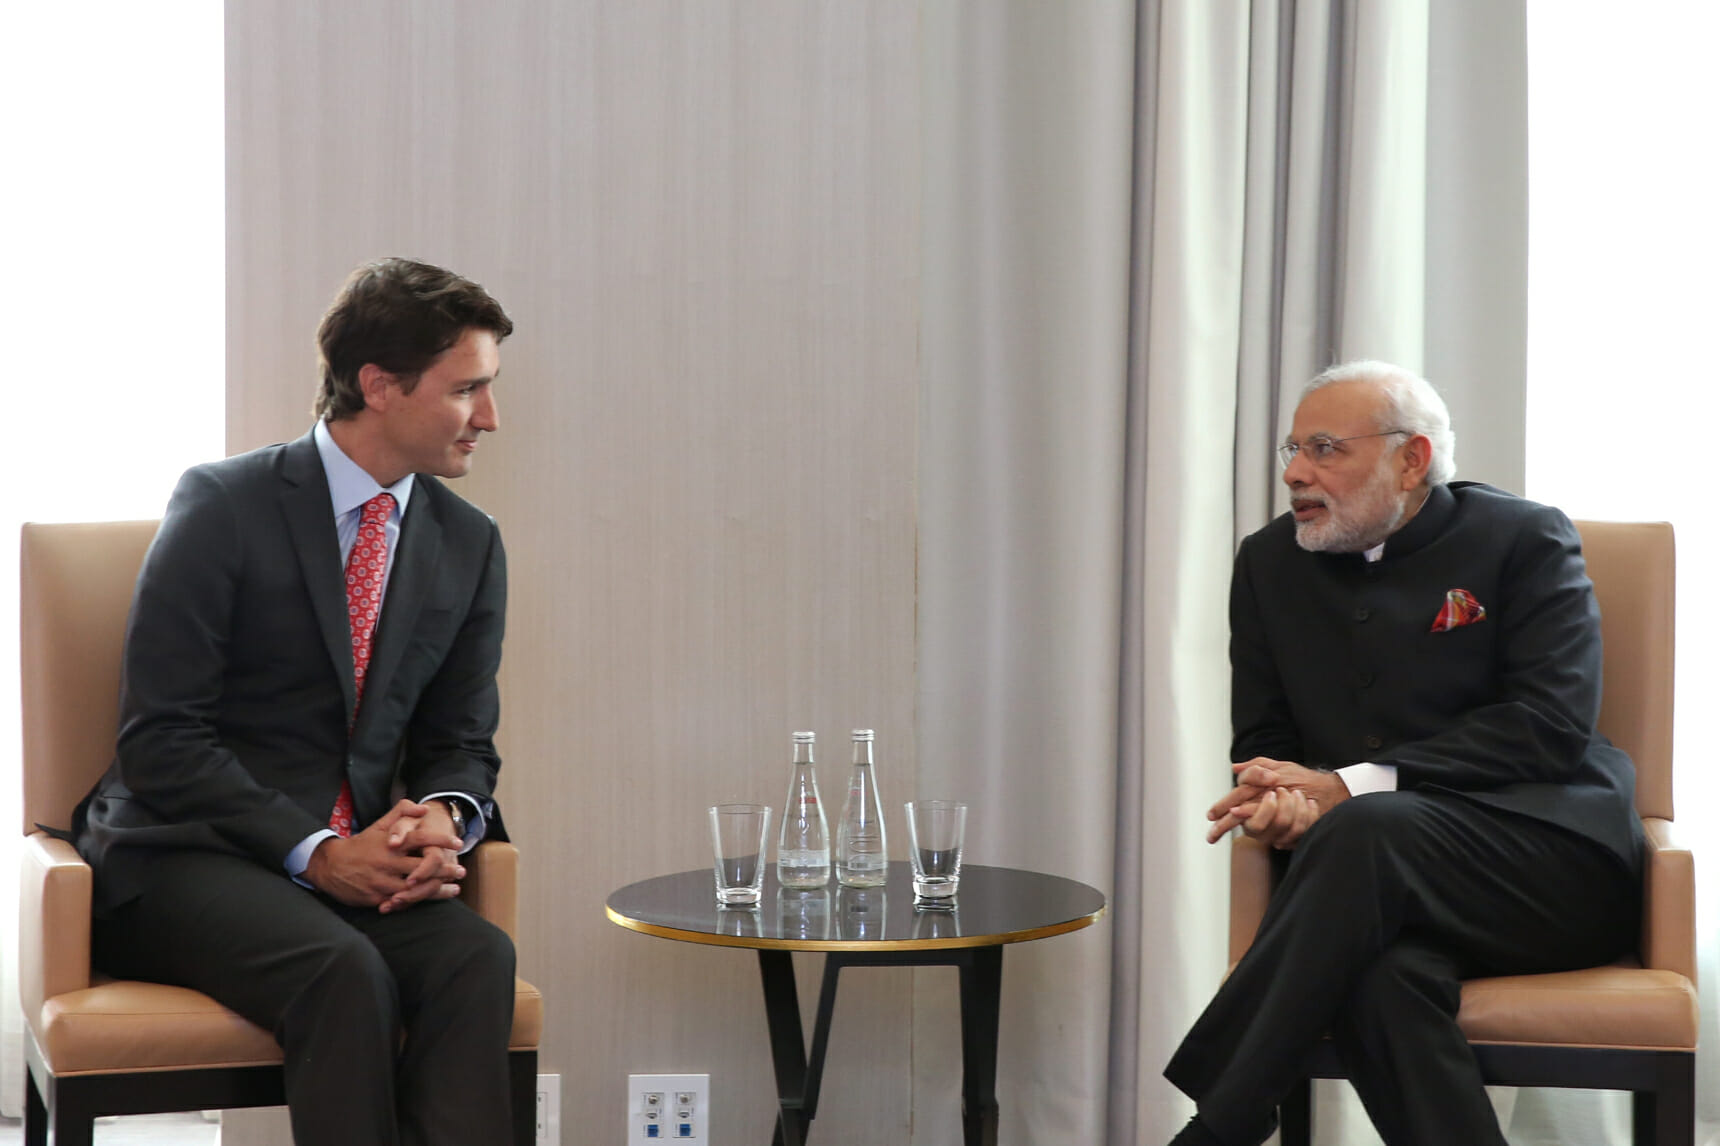 Indian Prime Minister Narendra Modi meets with Justin Trudeau